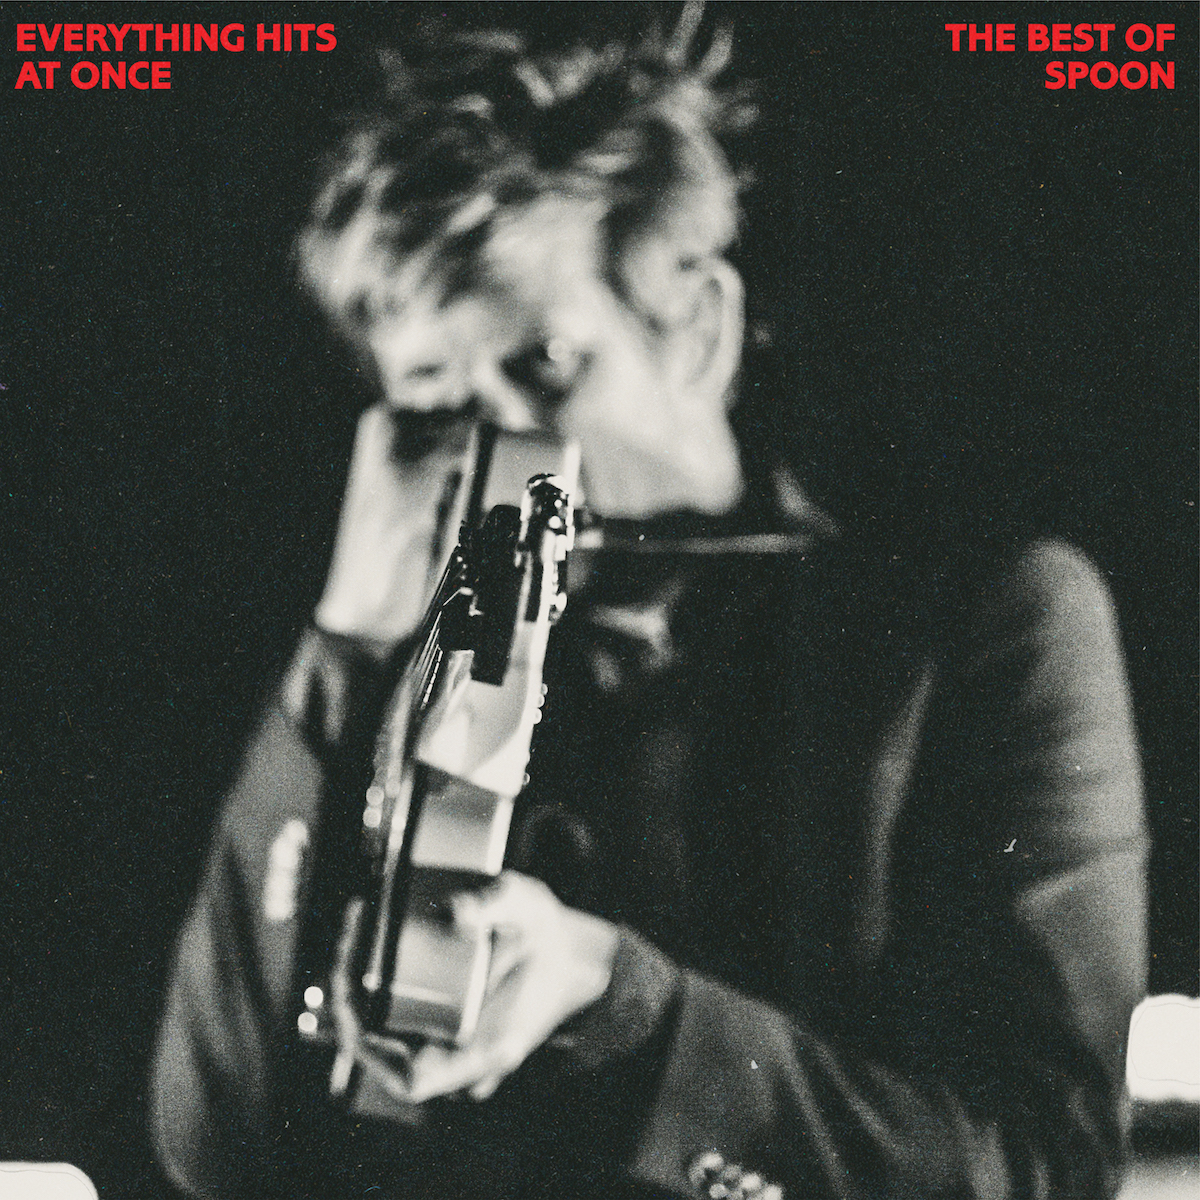 Spoon Everything Hits At once artwork cover physical